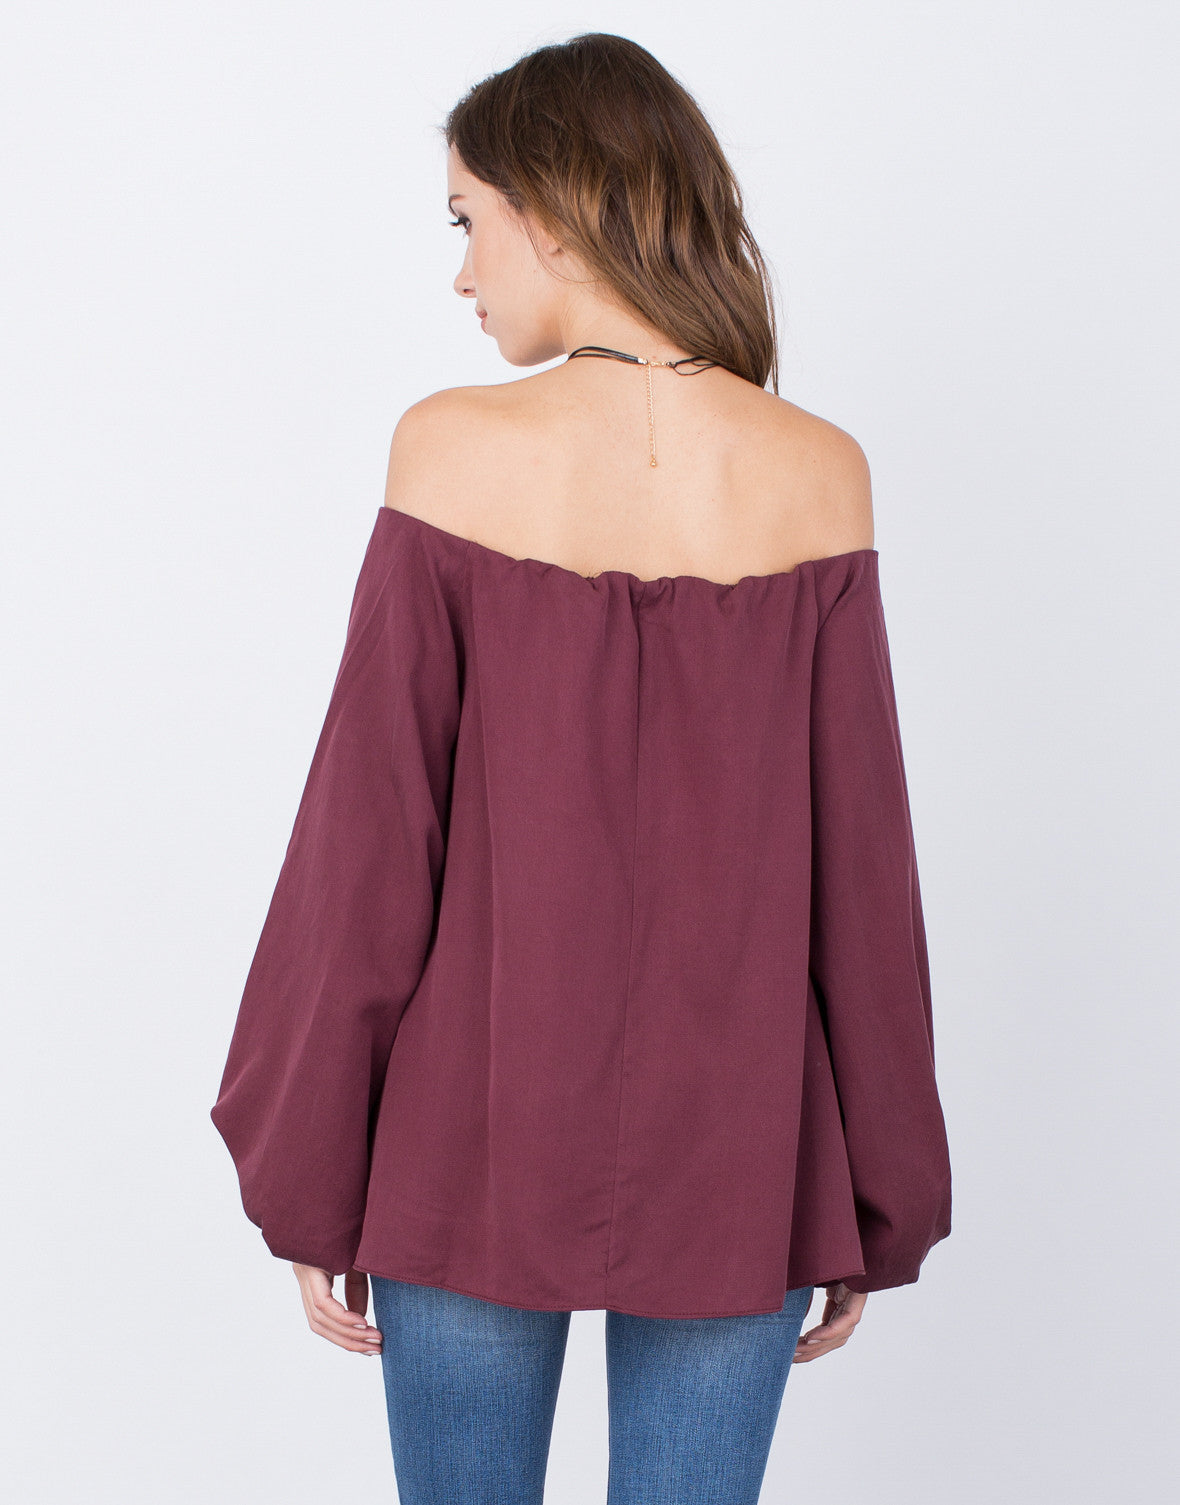 Back View of Soft Off-the-Shoulder Top